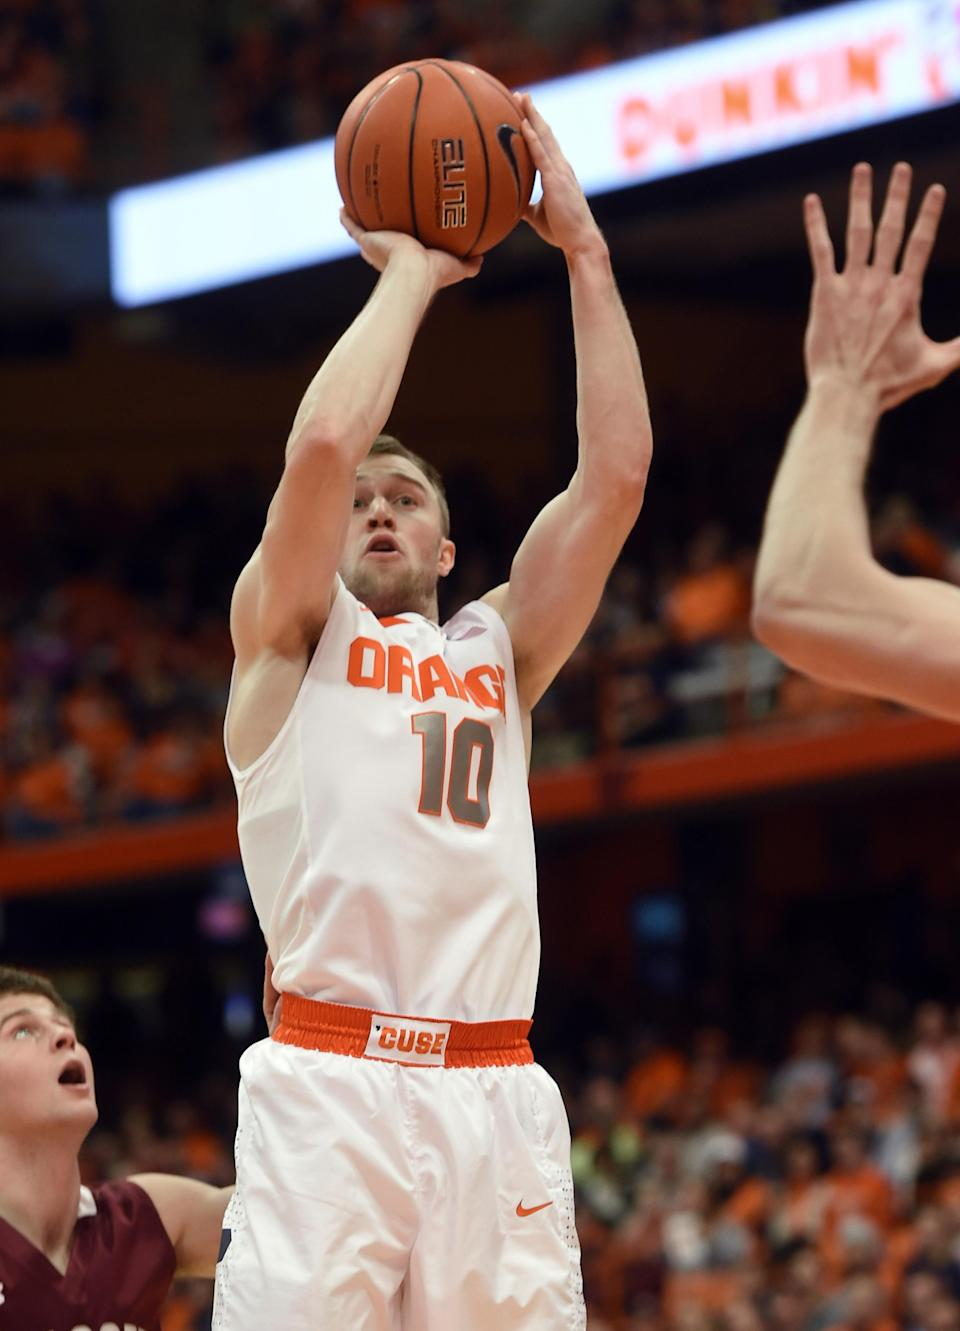 Syracuse's Trevor Cooney shoots against Colgate during the first half of an NCAA college basketball game in Syracuse, N.Y., Monday, Dec. 22, 2014. (AP Photo/Kevin Rivoli)